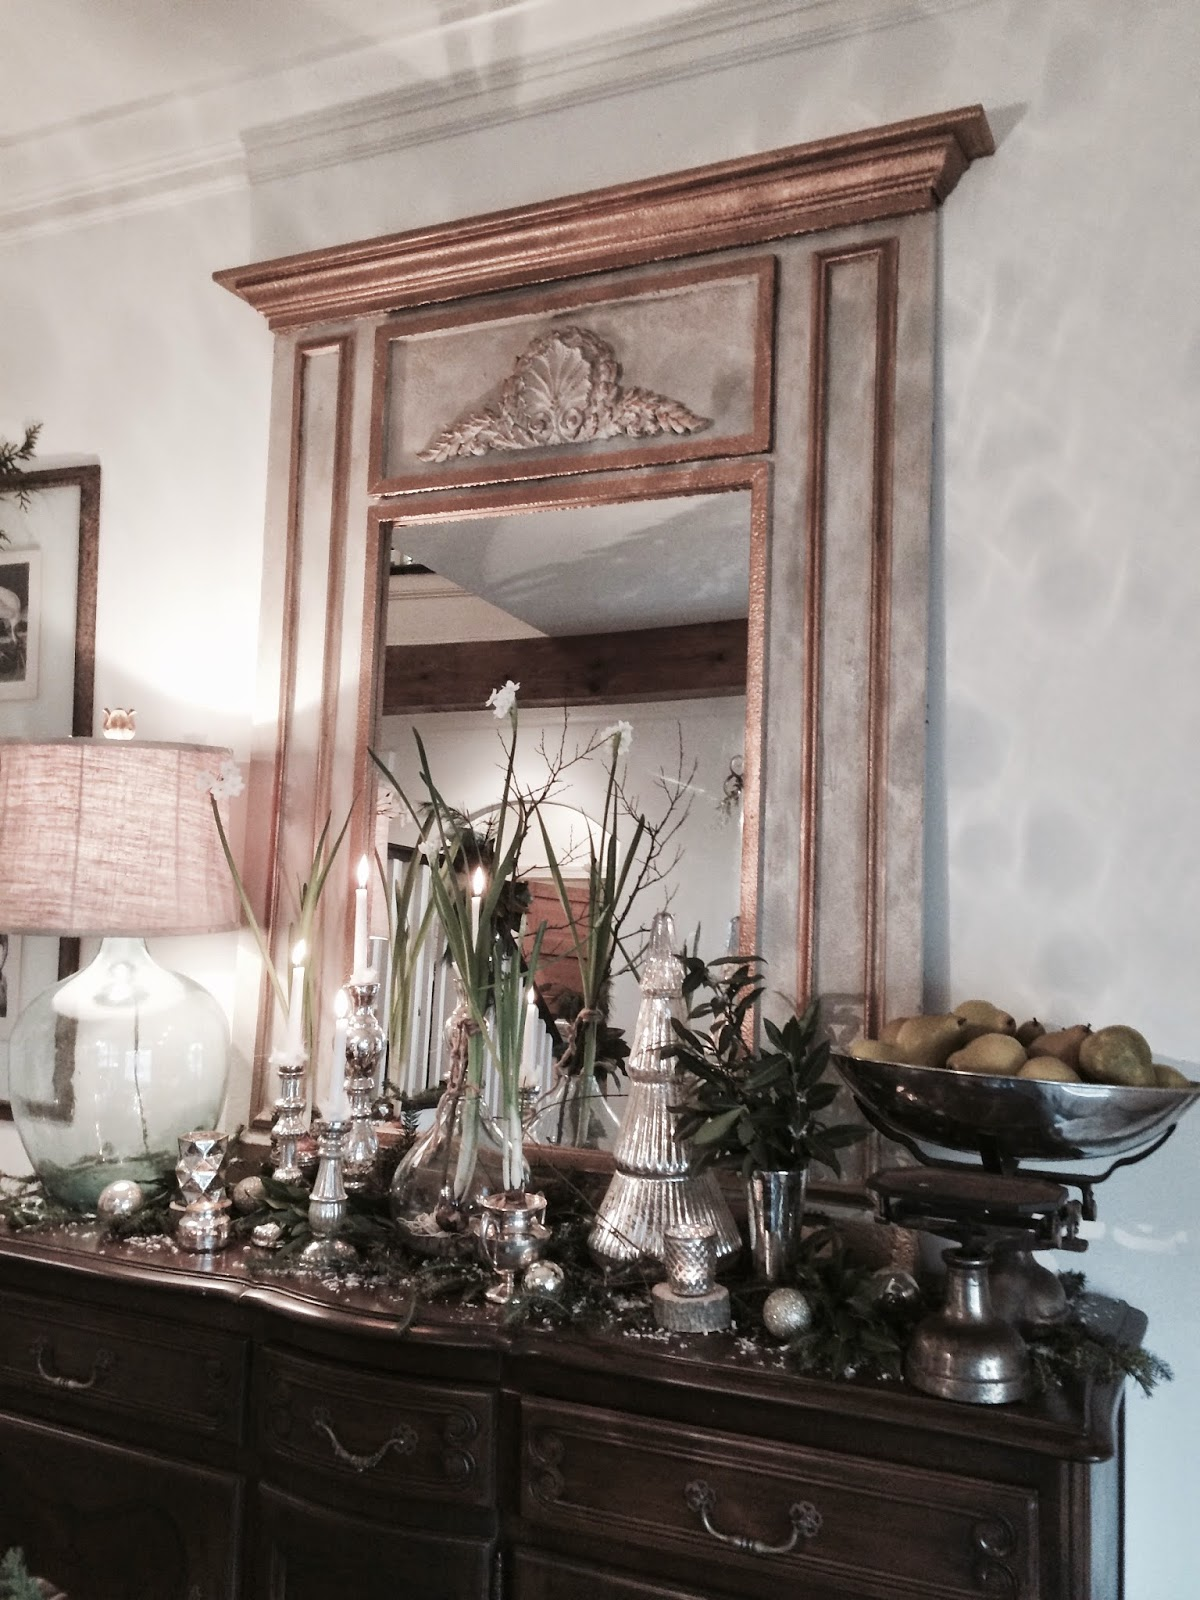 City Farmhouse - Franklin, TN - Antiques and Vintage for Urban & City Living - Westhaven Home Tour - Big Design on a Small Budget